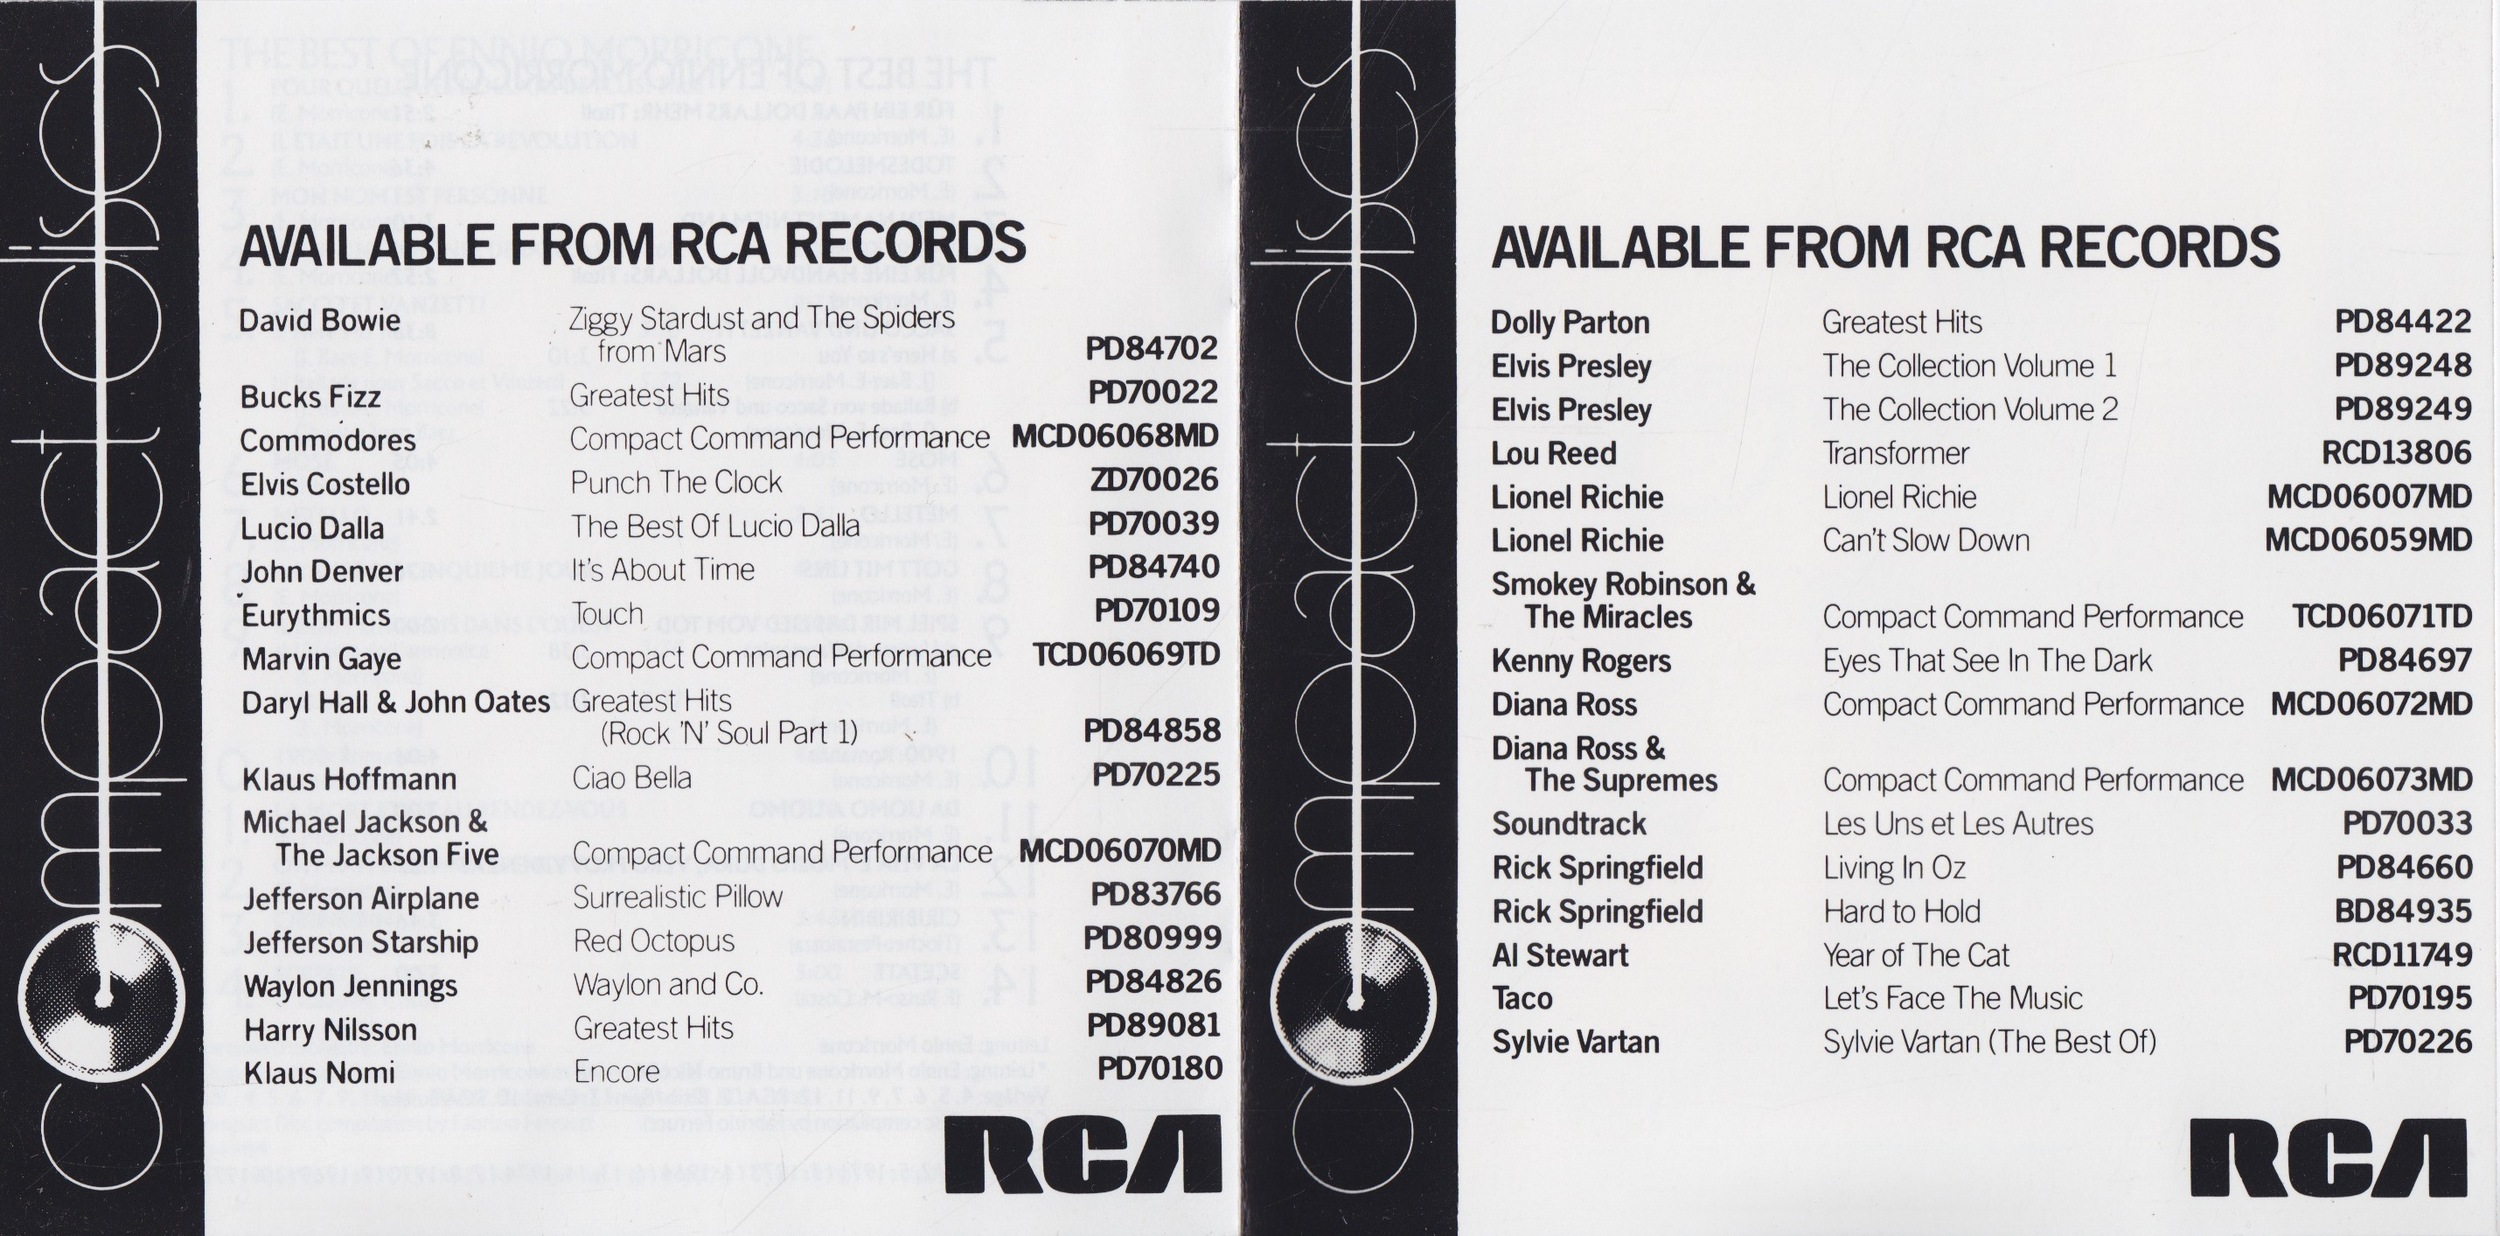 Typical RCA interior booklet pages.  If you like Kenny Rogers, you're sure to dig this Klaus Nomi CD!